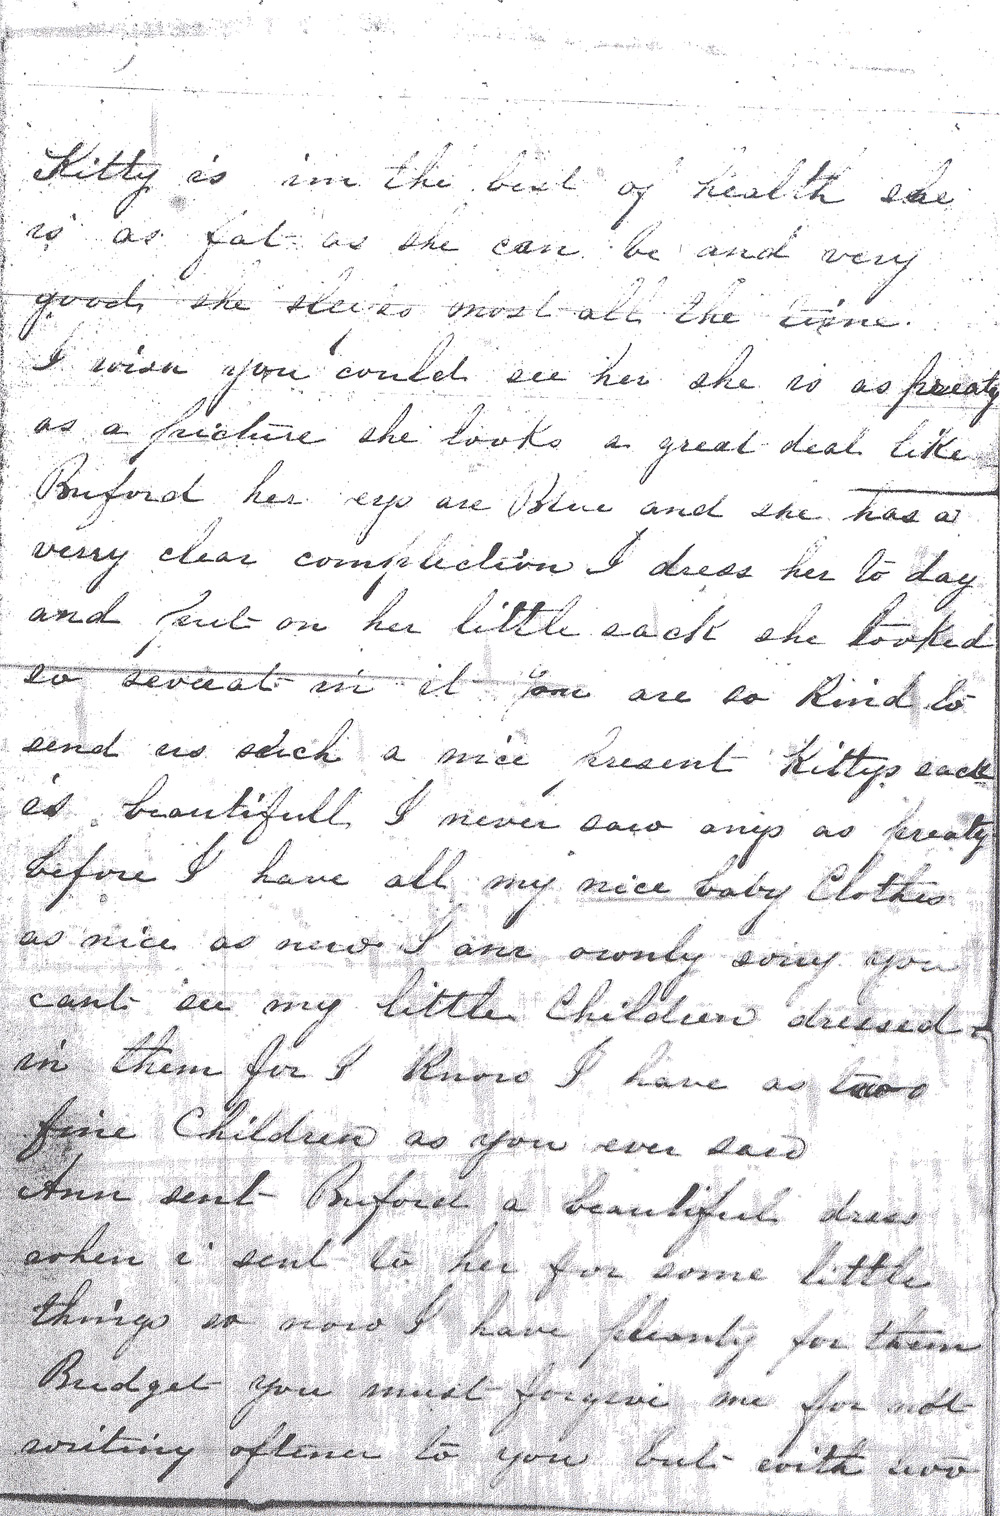 Kate Hogan Letter 2, Page 4